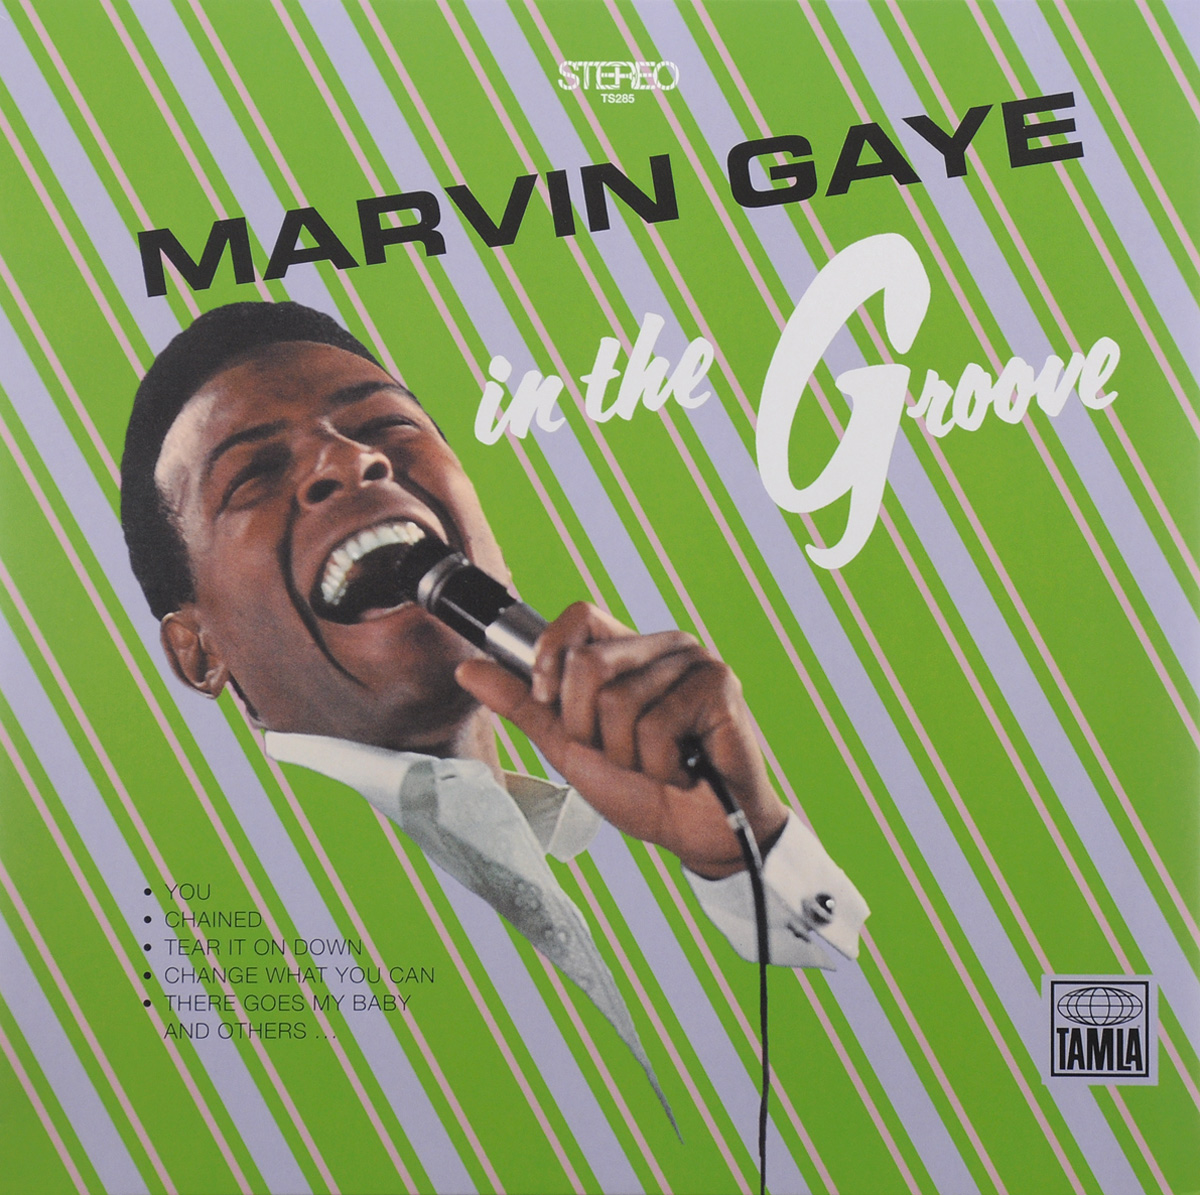 Марвин Гэй Marvin Gaye. In The Groove (LP) марвин гэй marvin gaye trouble man motion picture soundtrack lp